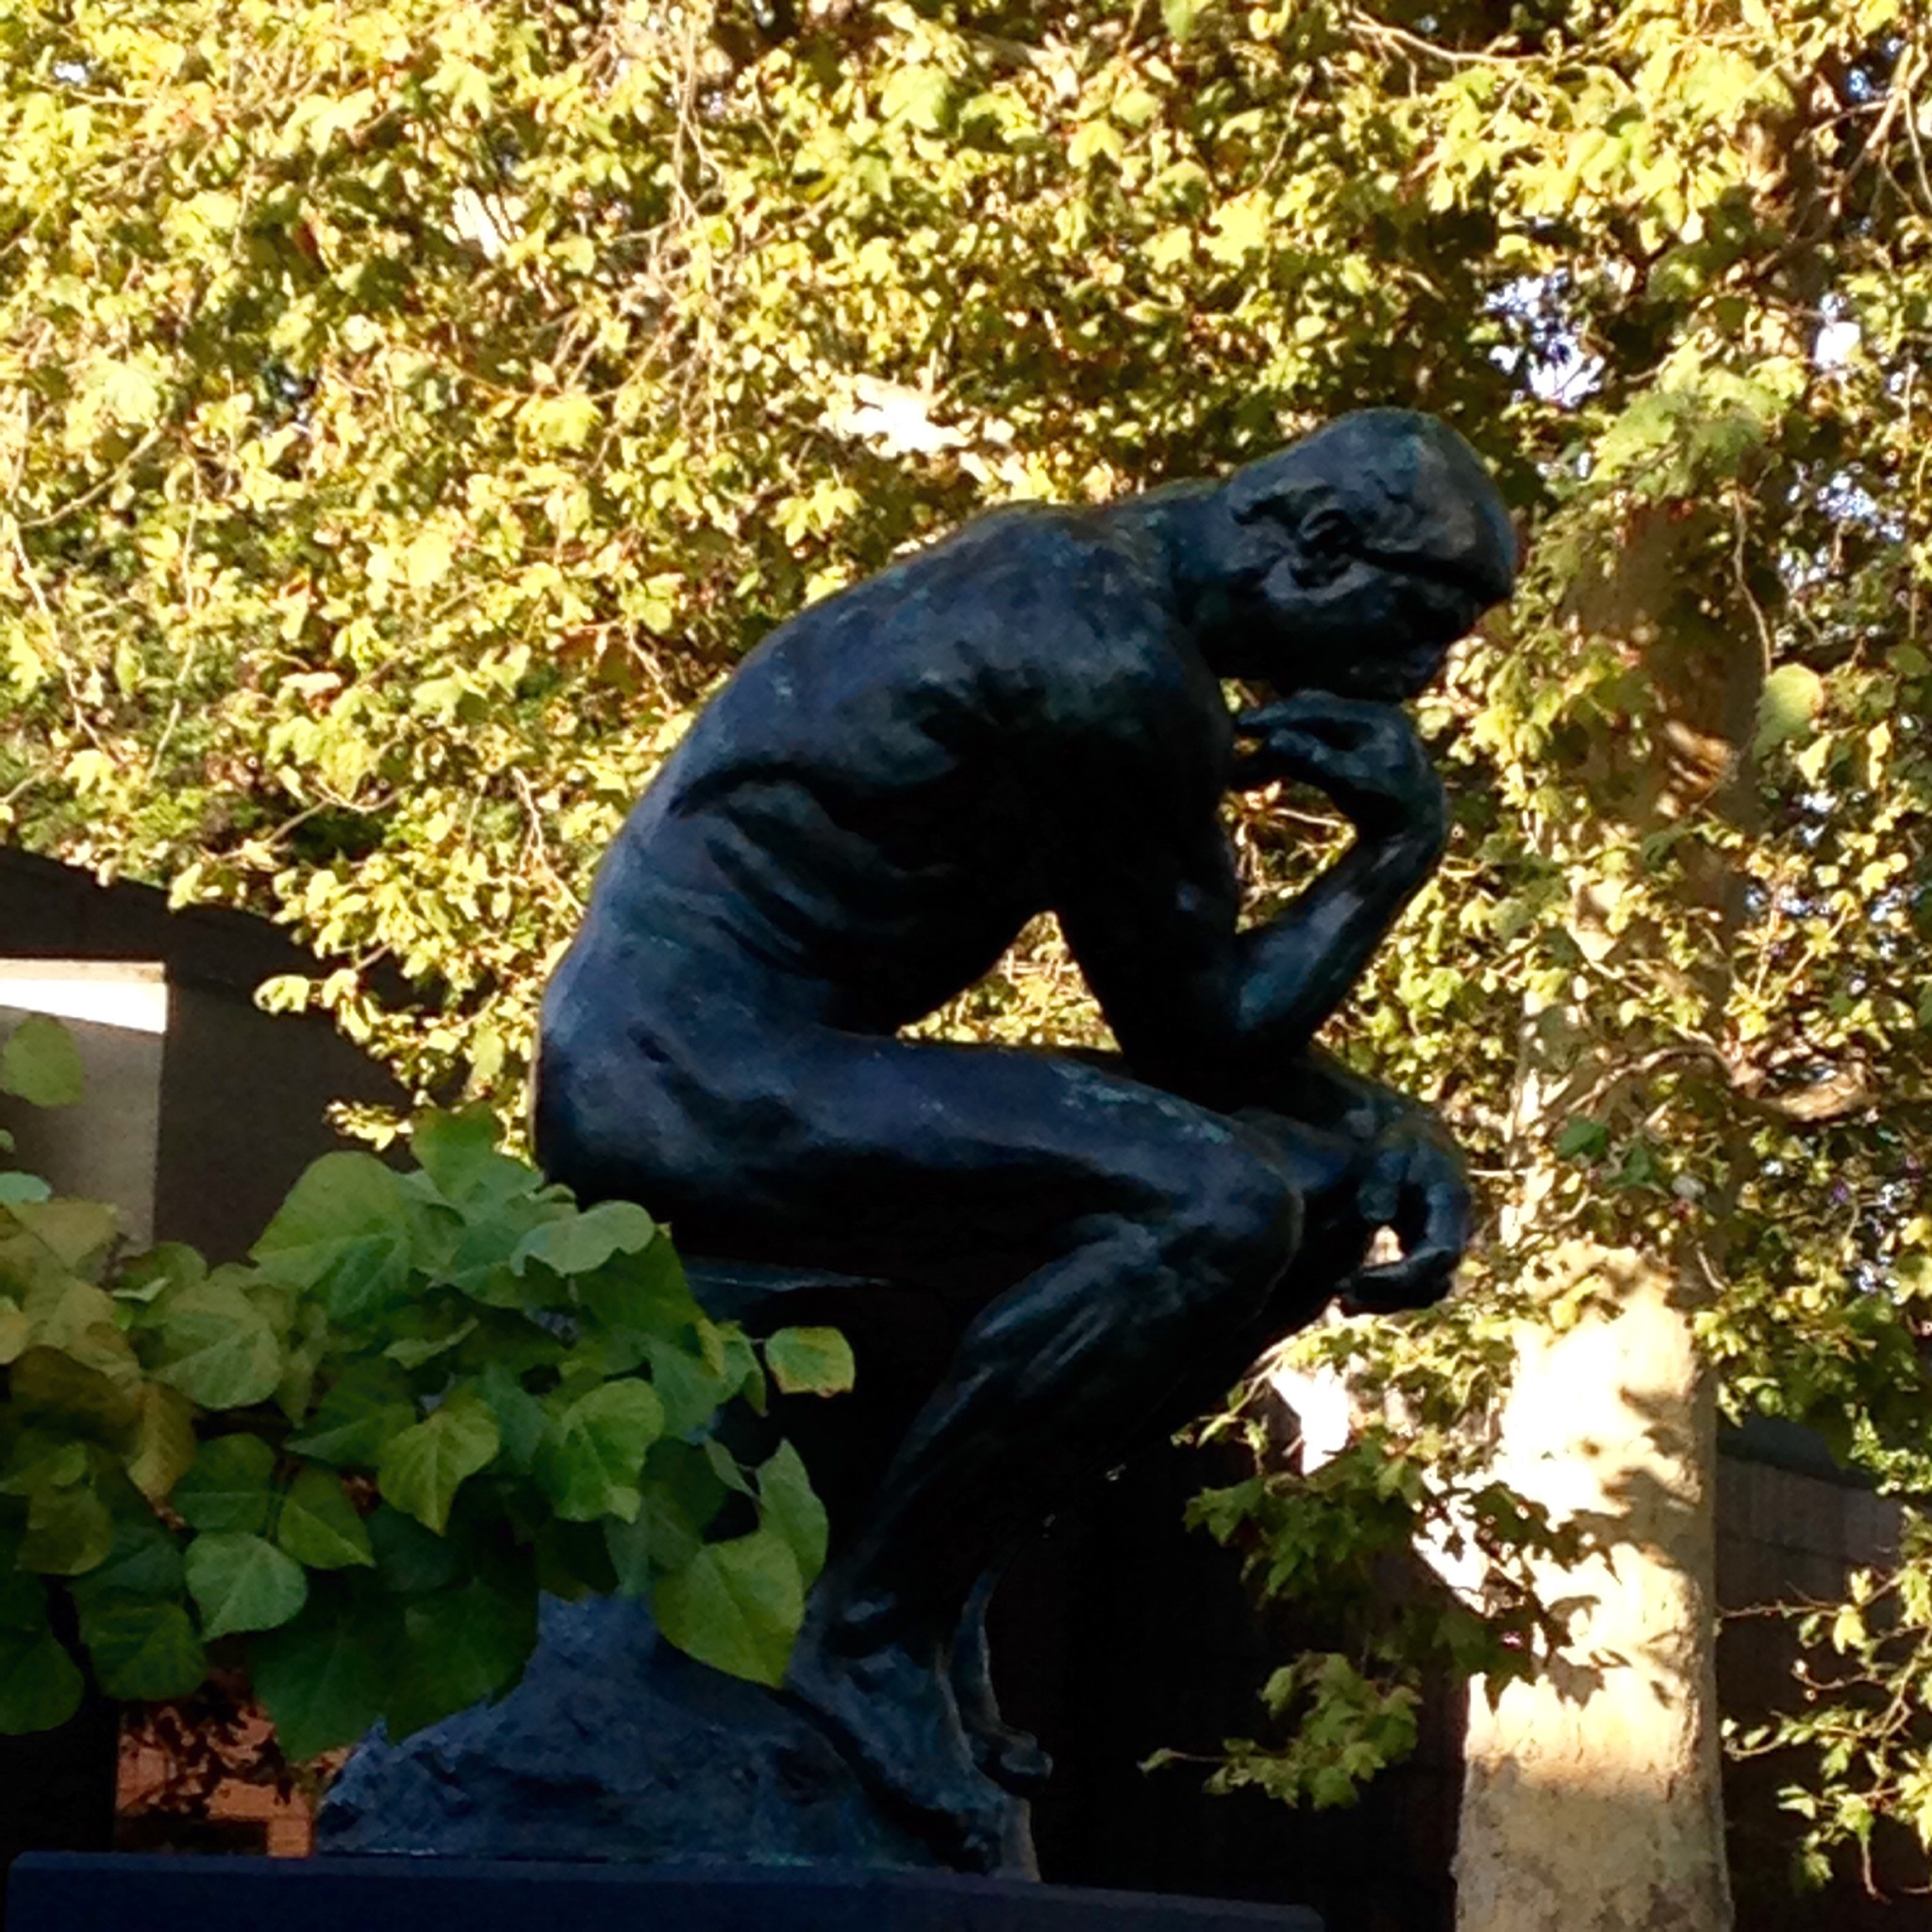 If you meander outside to the grounds of the museum facing Colorado Blvd, you'll be rewarded by Rodin's bronze, The Thinker. At the Norton Simon, it's Edition of 12, Cast No. 11.